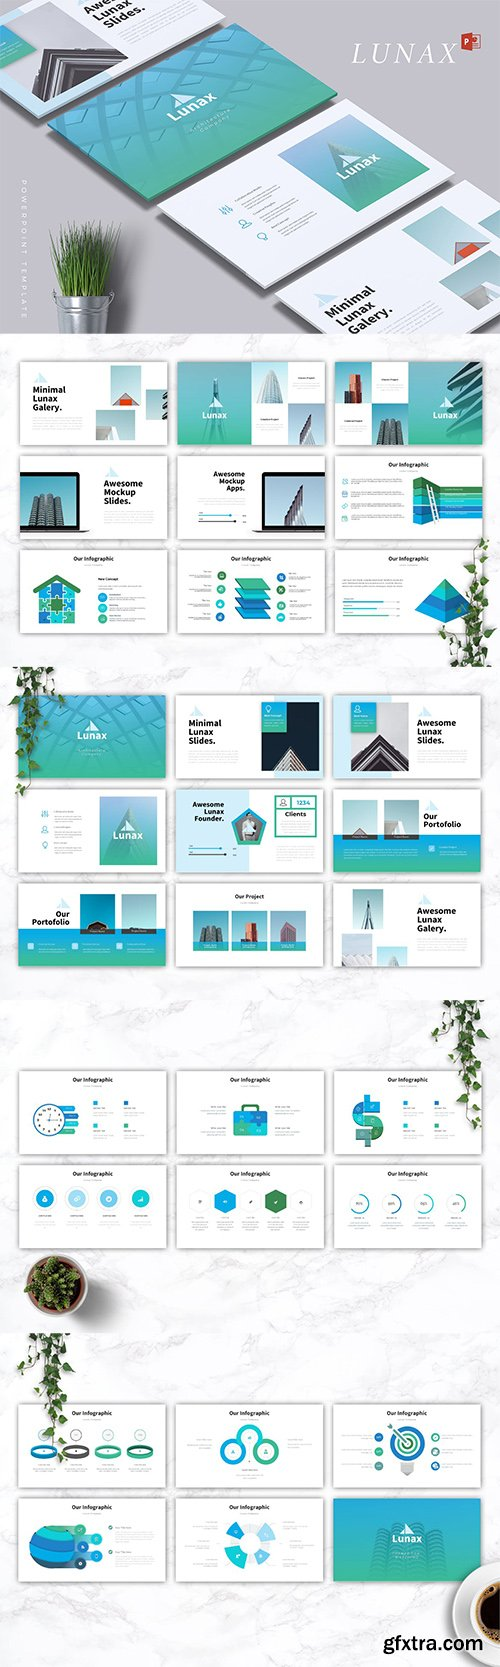 LUNAX - Powerpoint, Keynote and Google Slides Templates